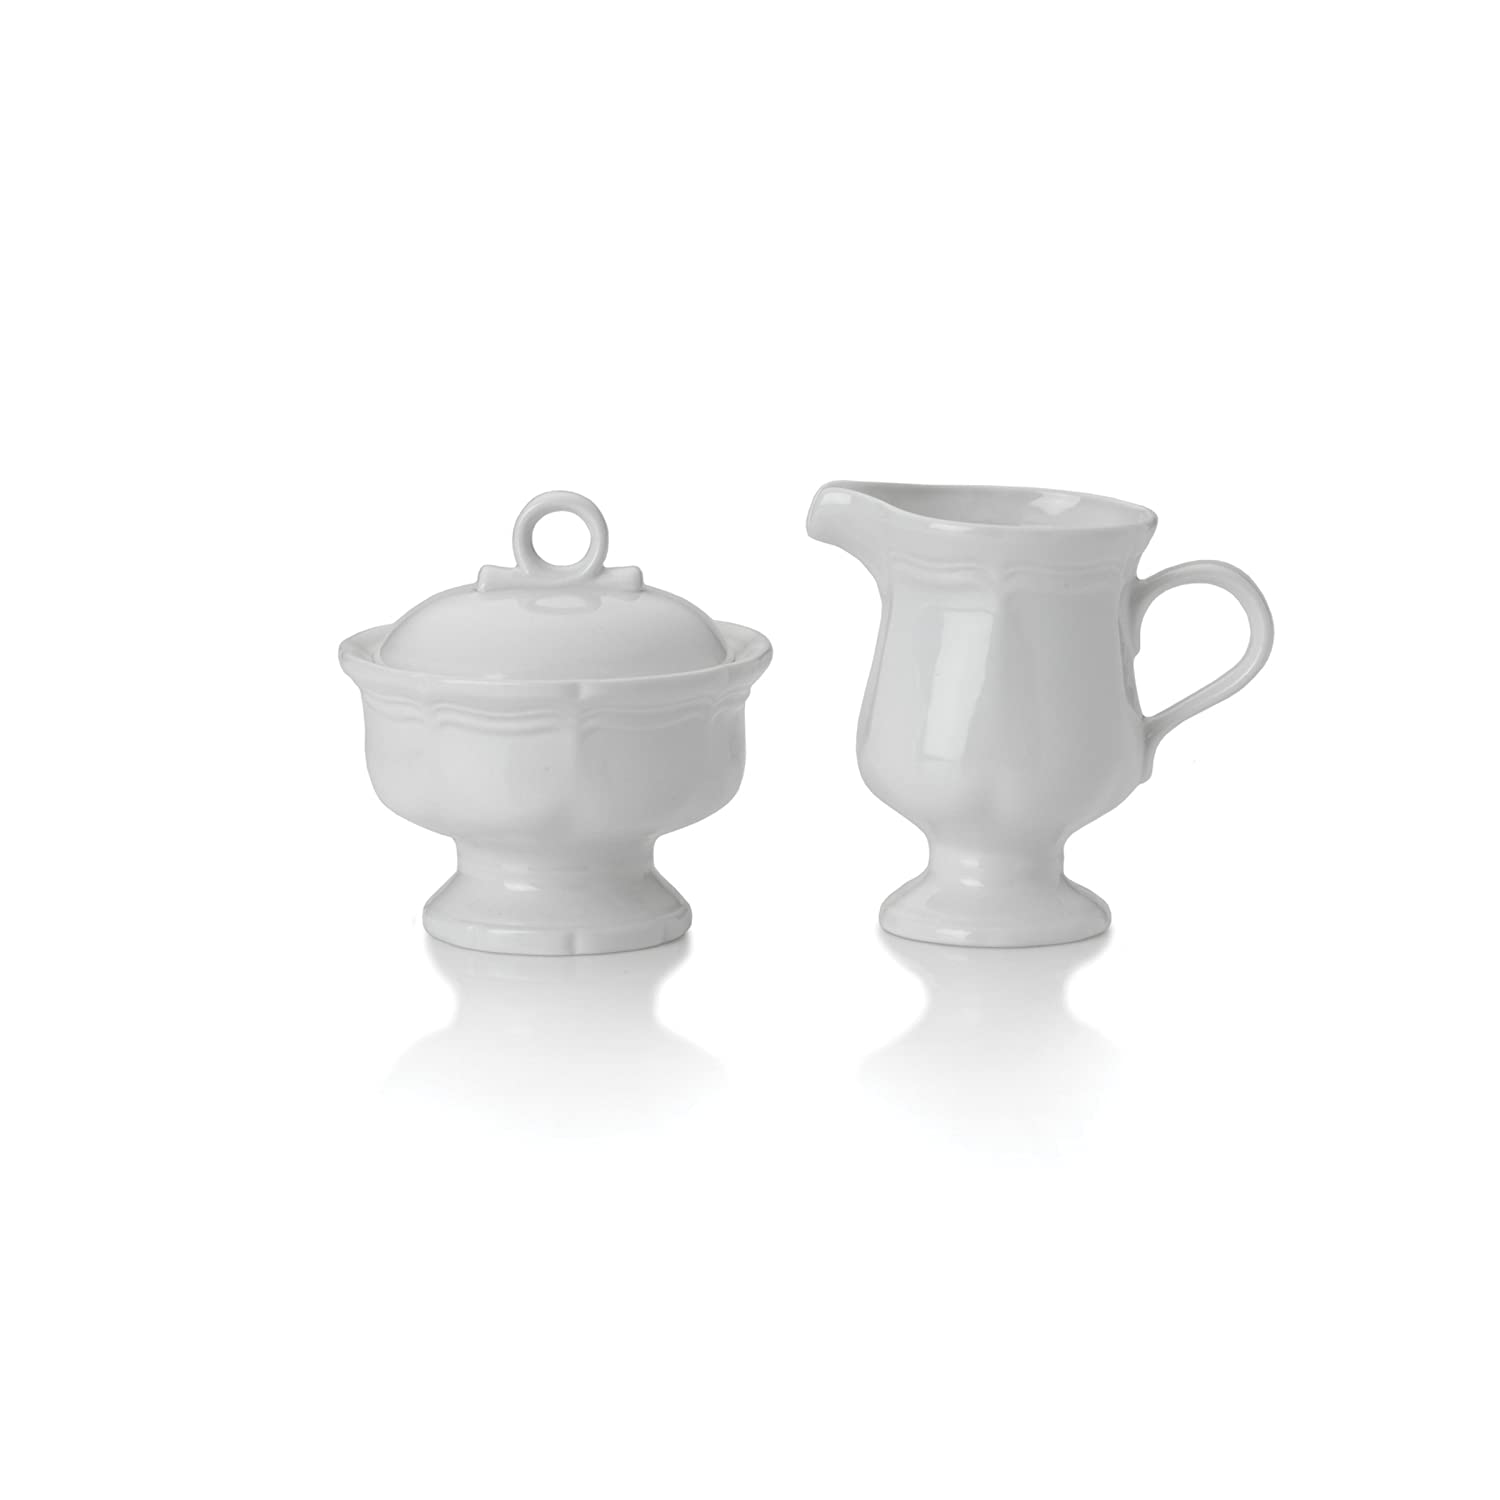 Mikasa French Countryside Creamer